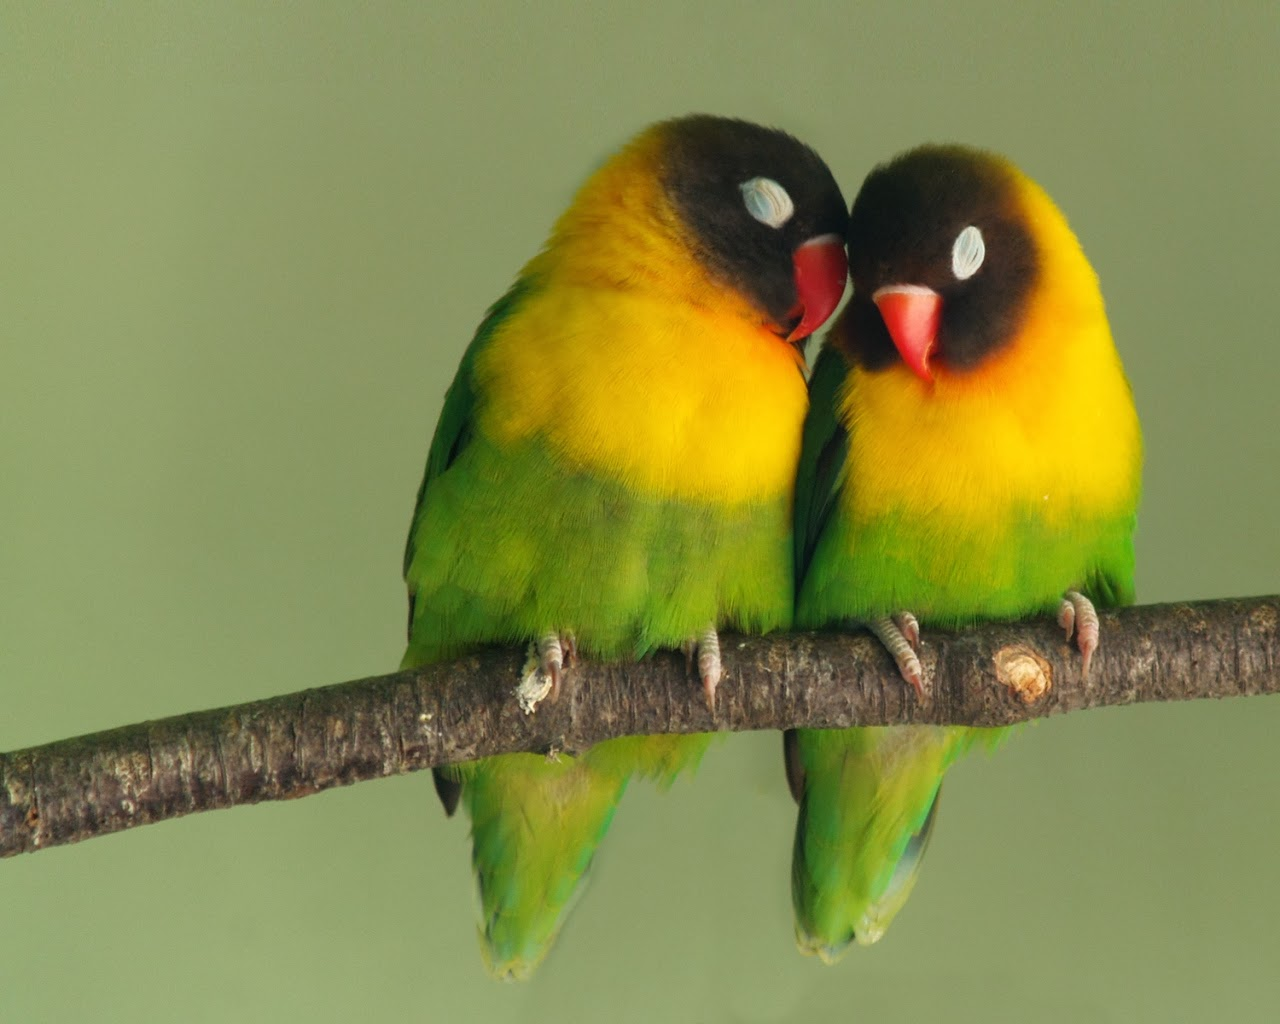 Love Birds Wallpaper In Hd : cute Love Birds Wallpaper HD Background - HD wallpaper